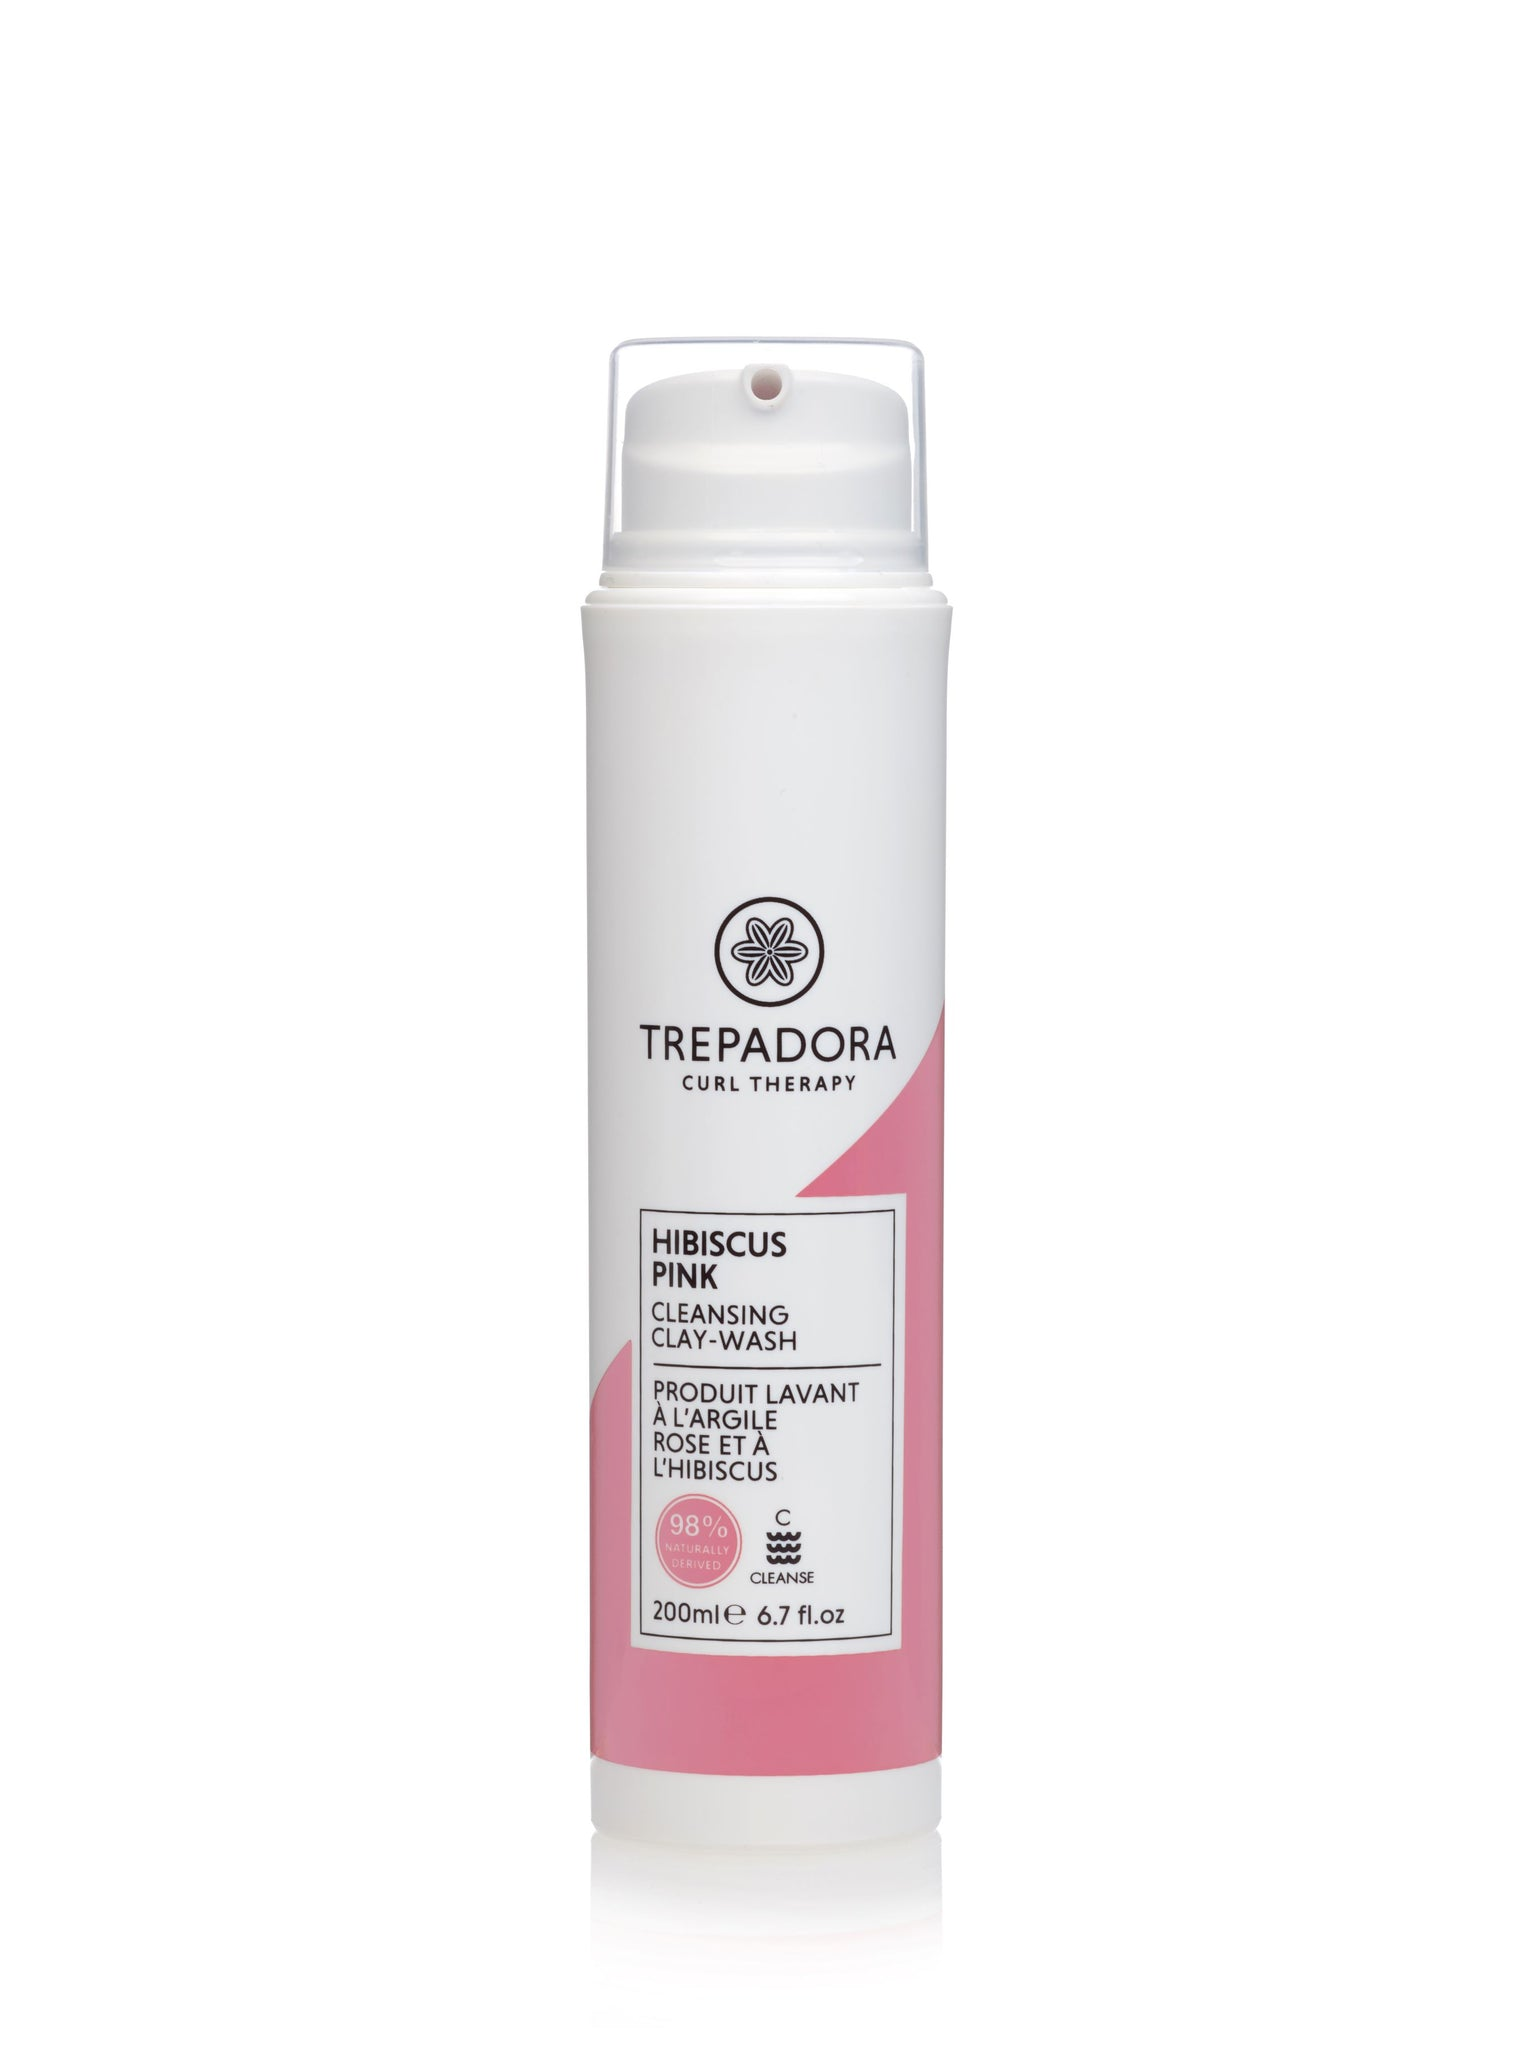 Trepadora Hibiscus Cleansing Clay Wash 200ml - Product Junkie DC